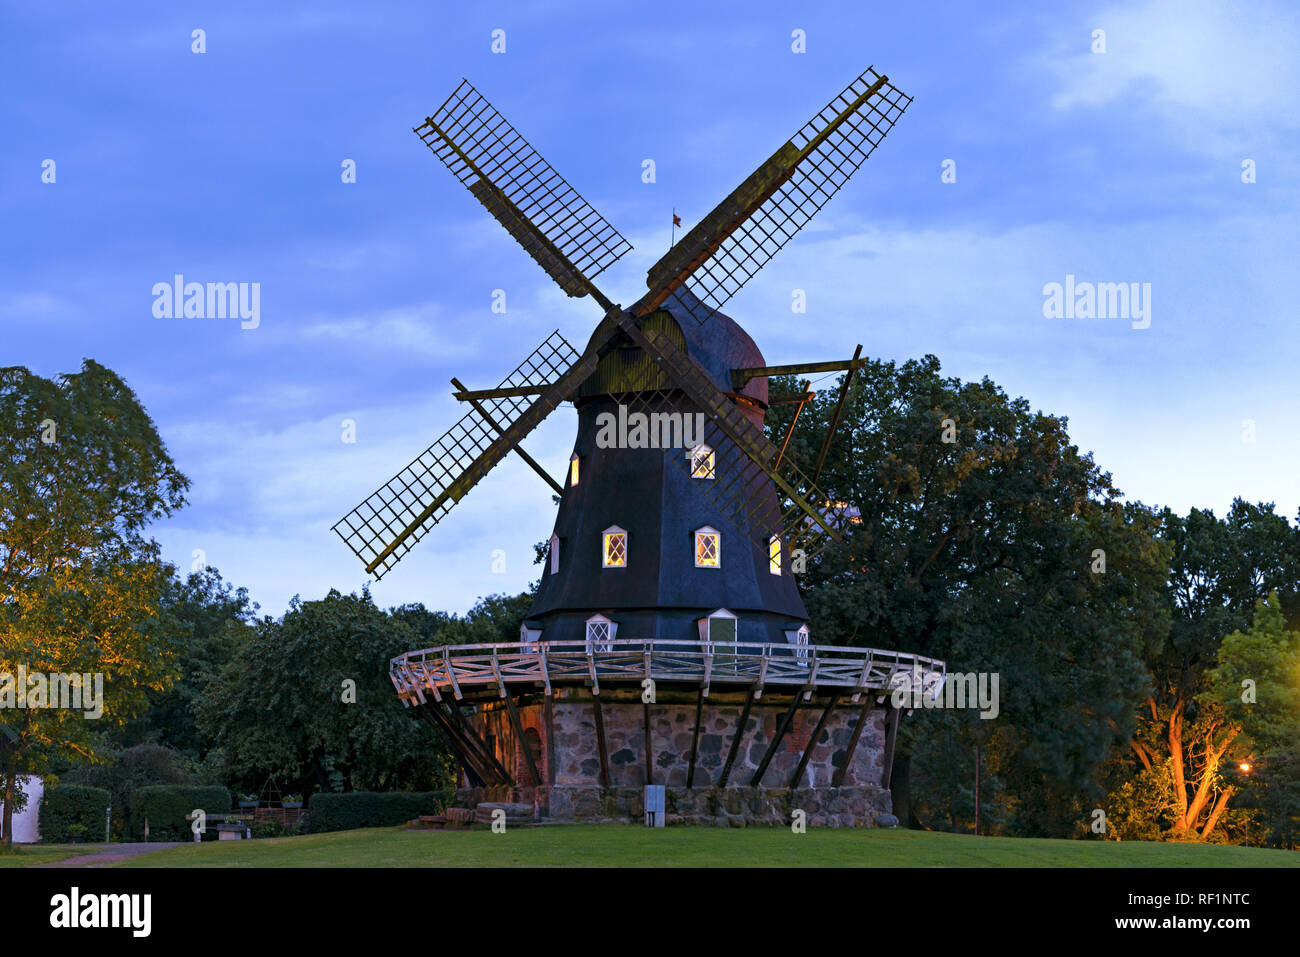 Old Windmill Slottsmollan in the Kungsparken Park in Malmo, Sweden. - Stock Image